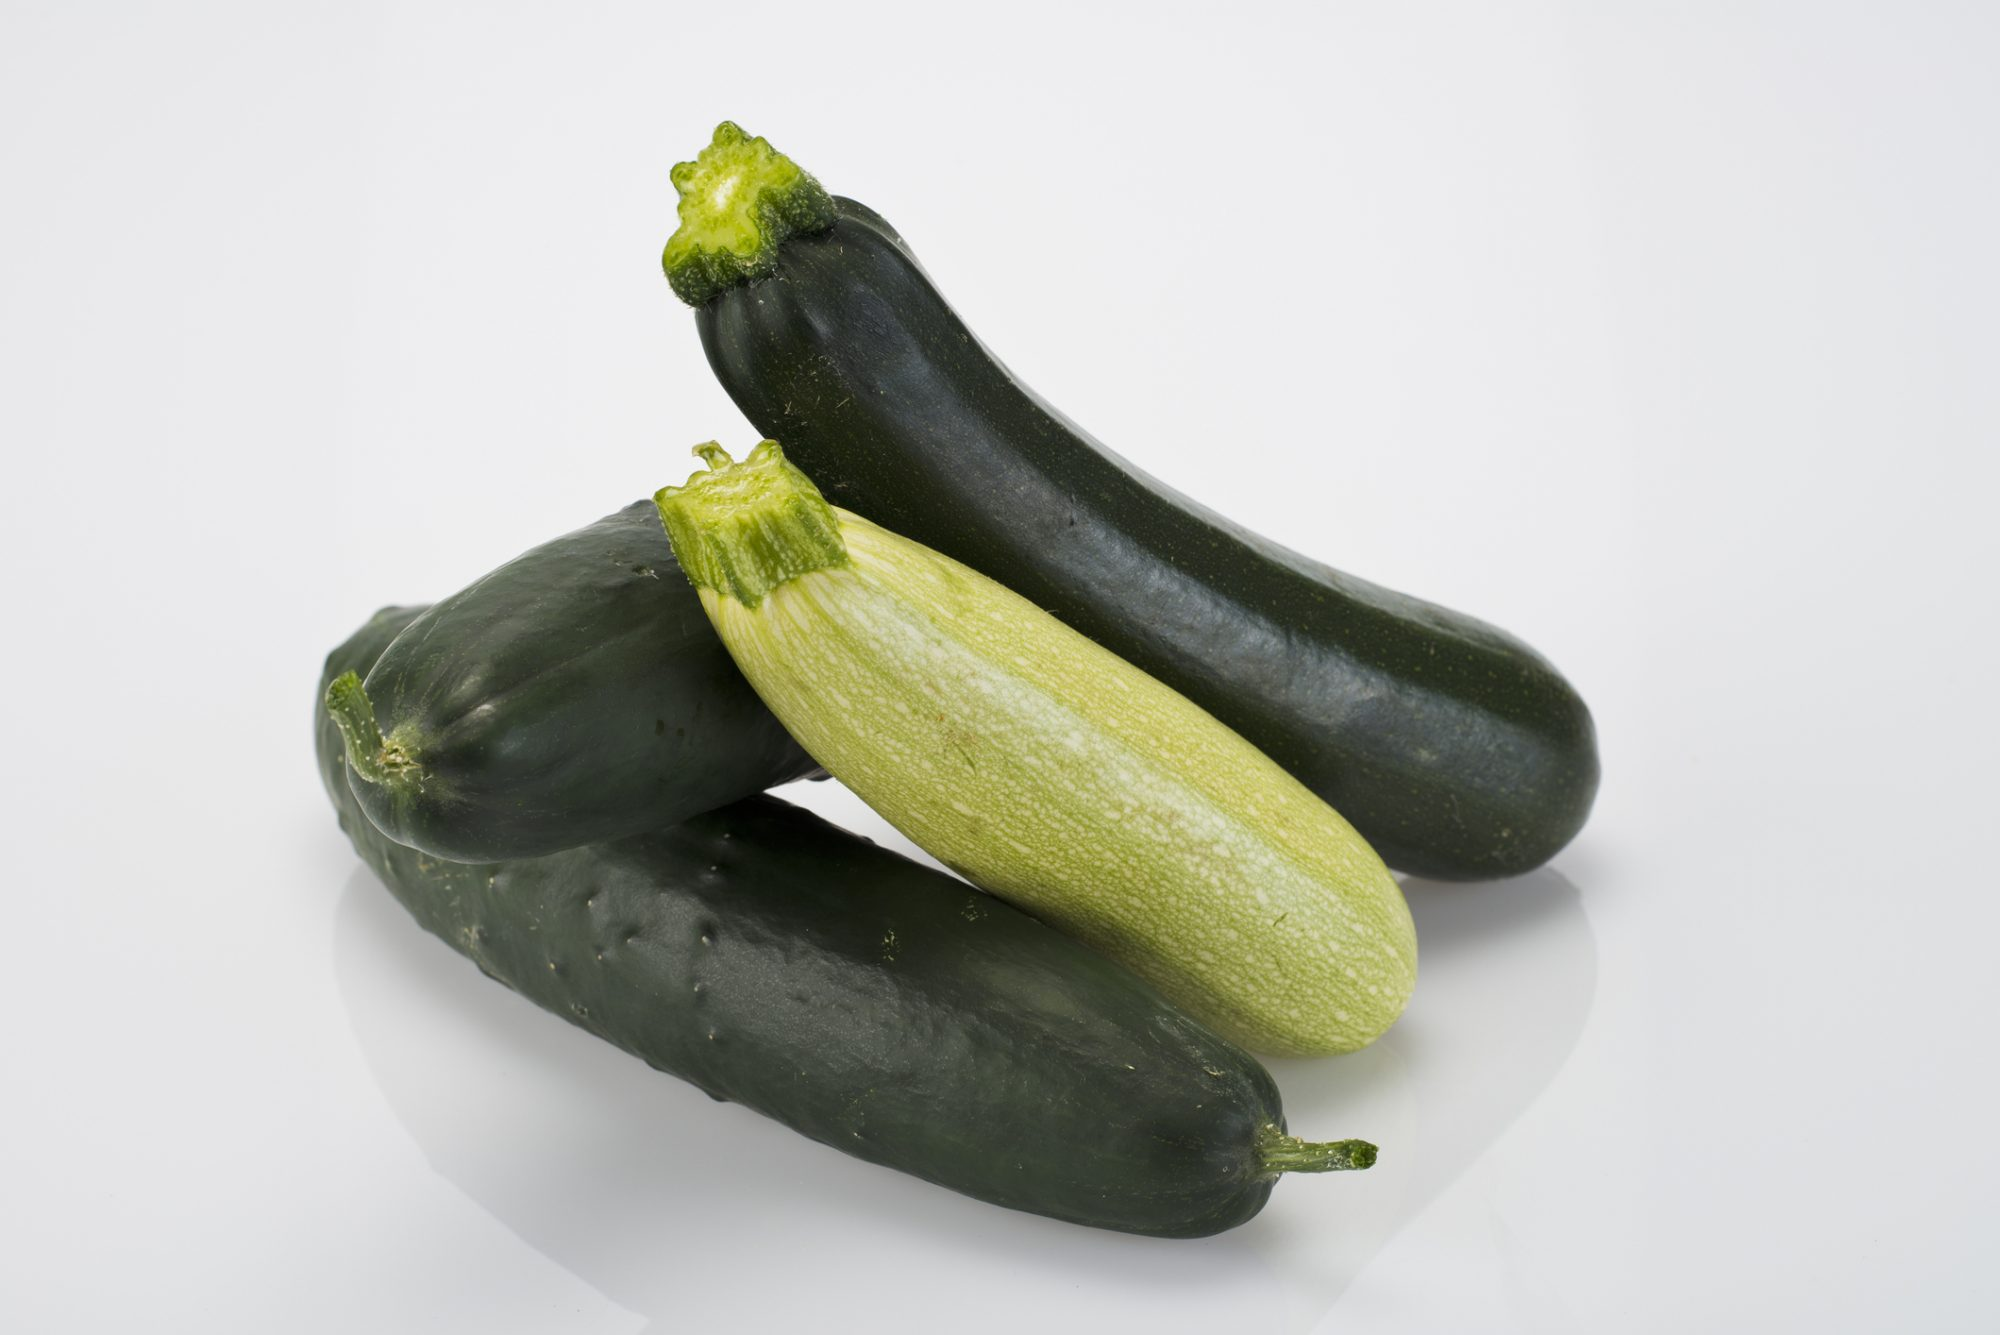 The Difference Between Cucumber and Zucchini